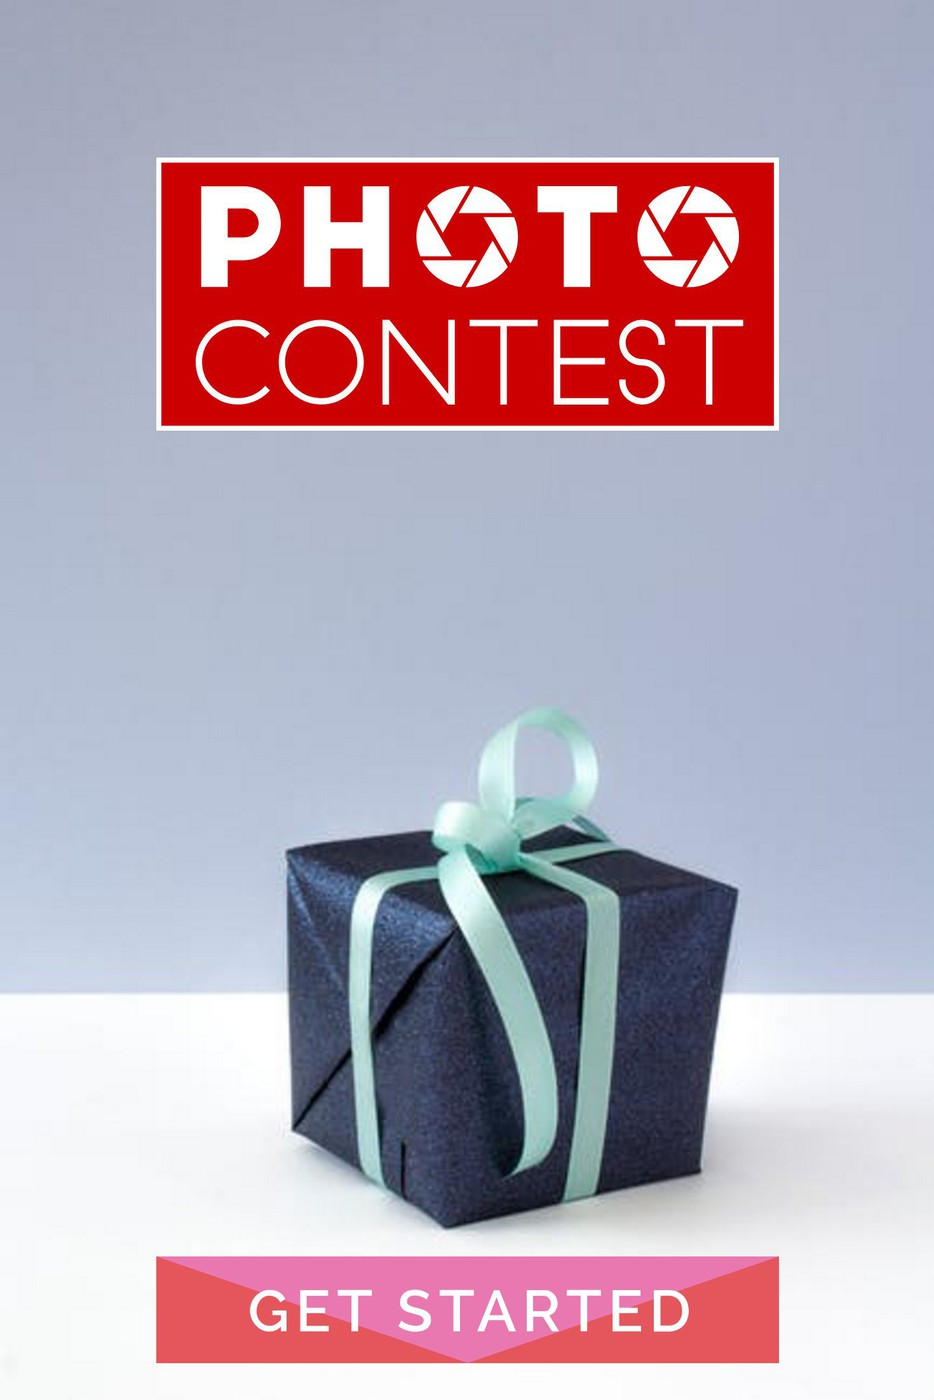 Giveaway - Win Prizes by entering our contest for Free